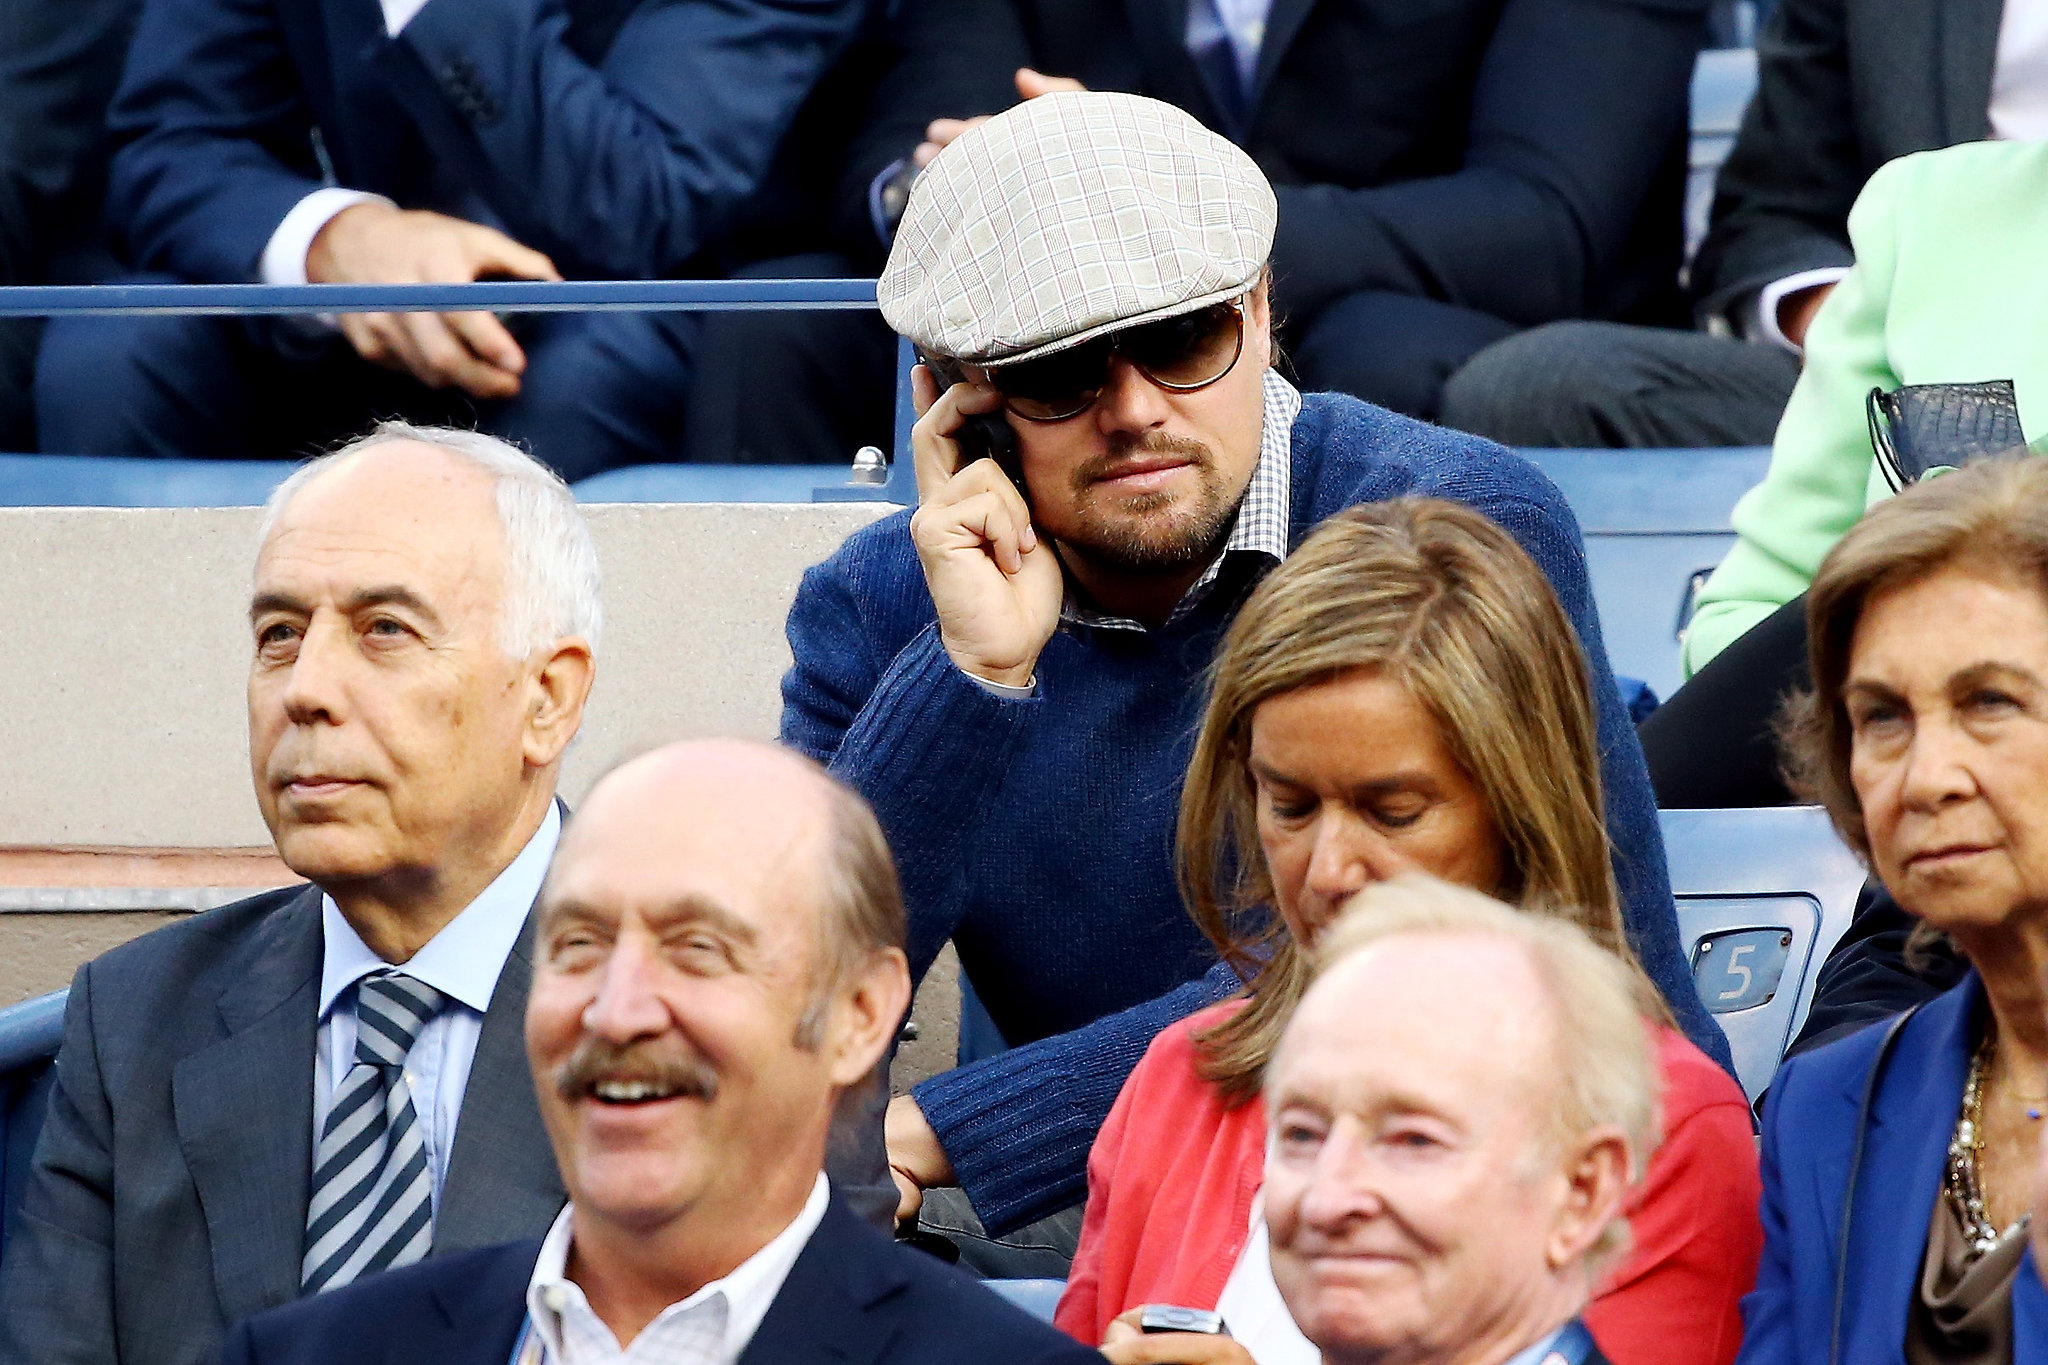 Leonardo DiCaprio took a quick call during the US Open.